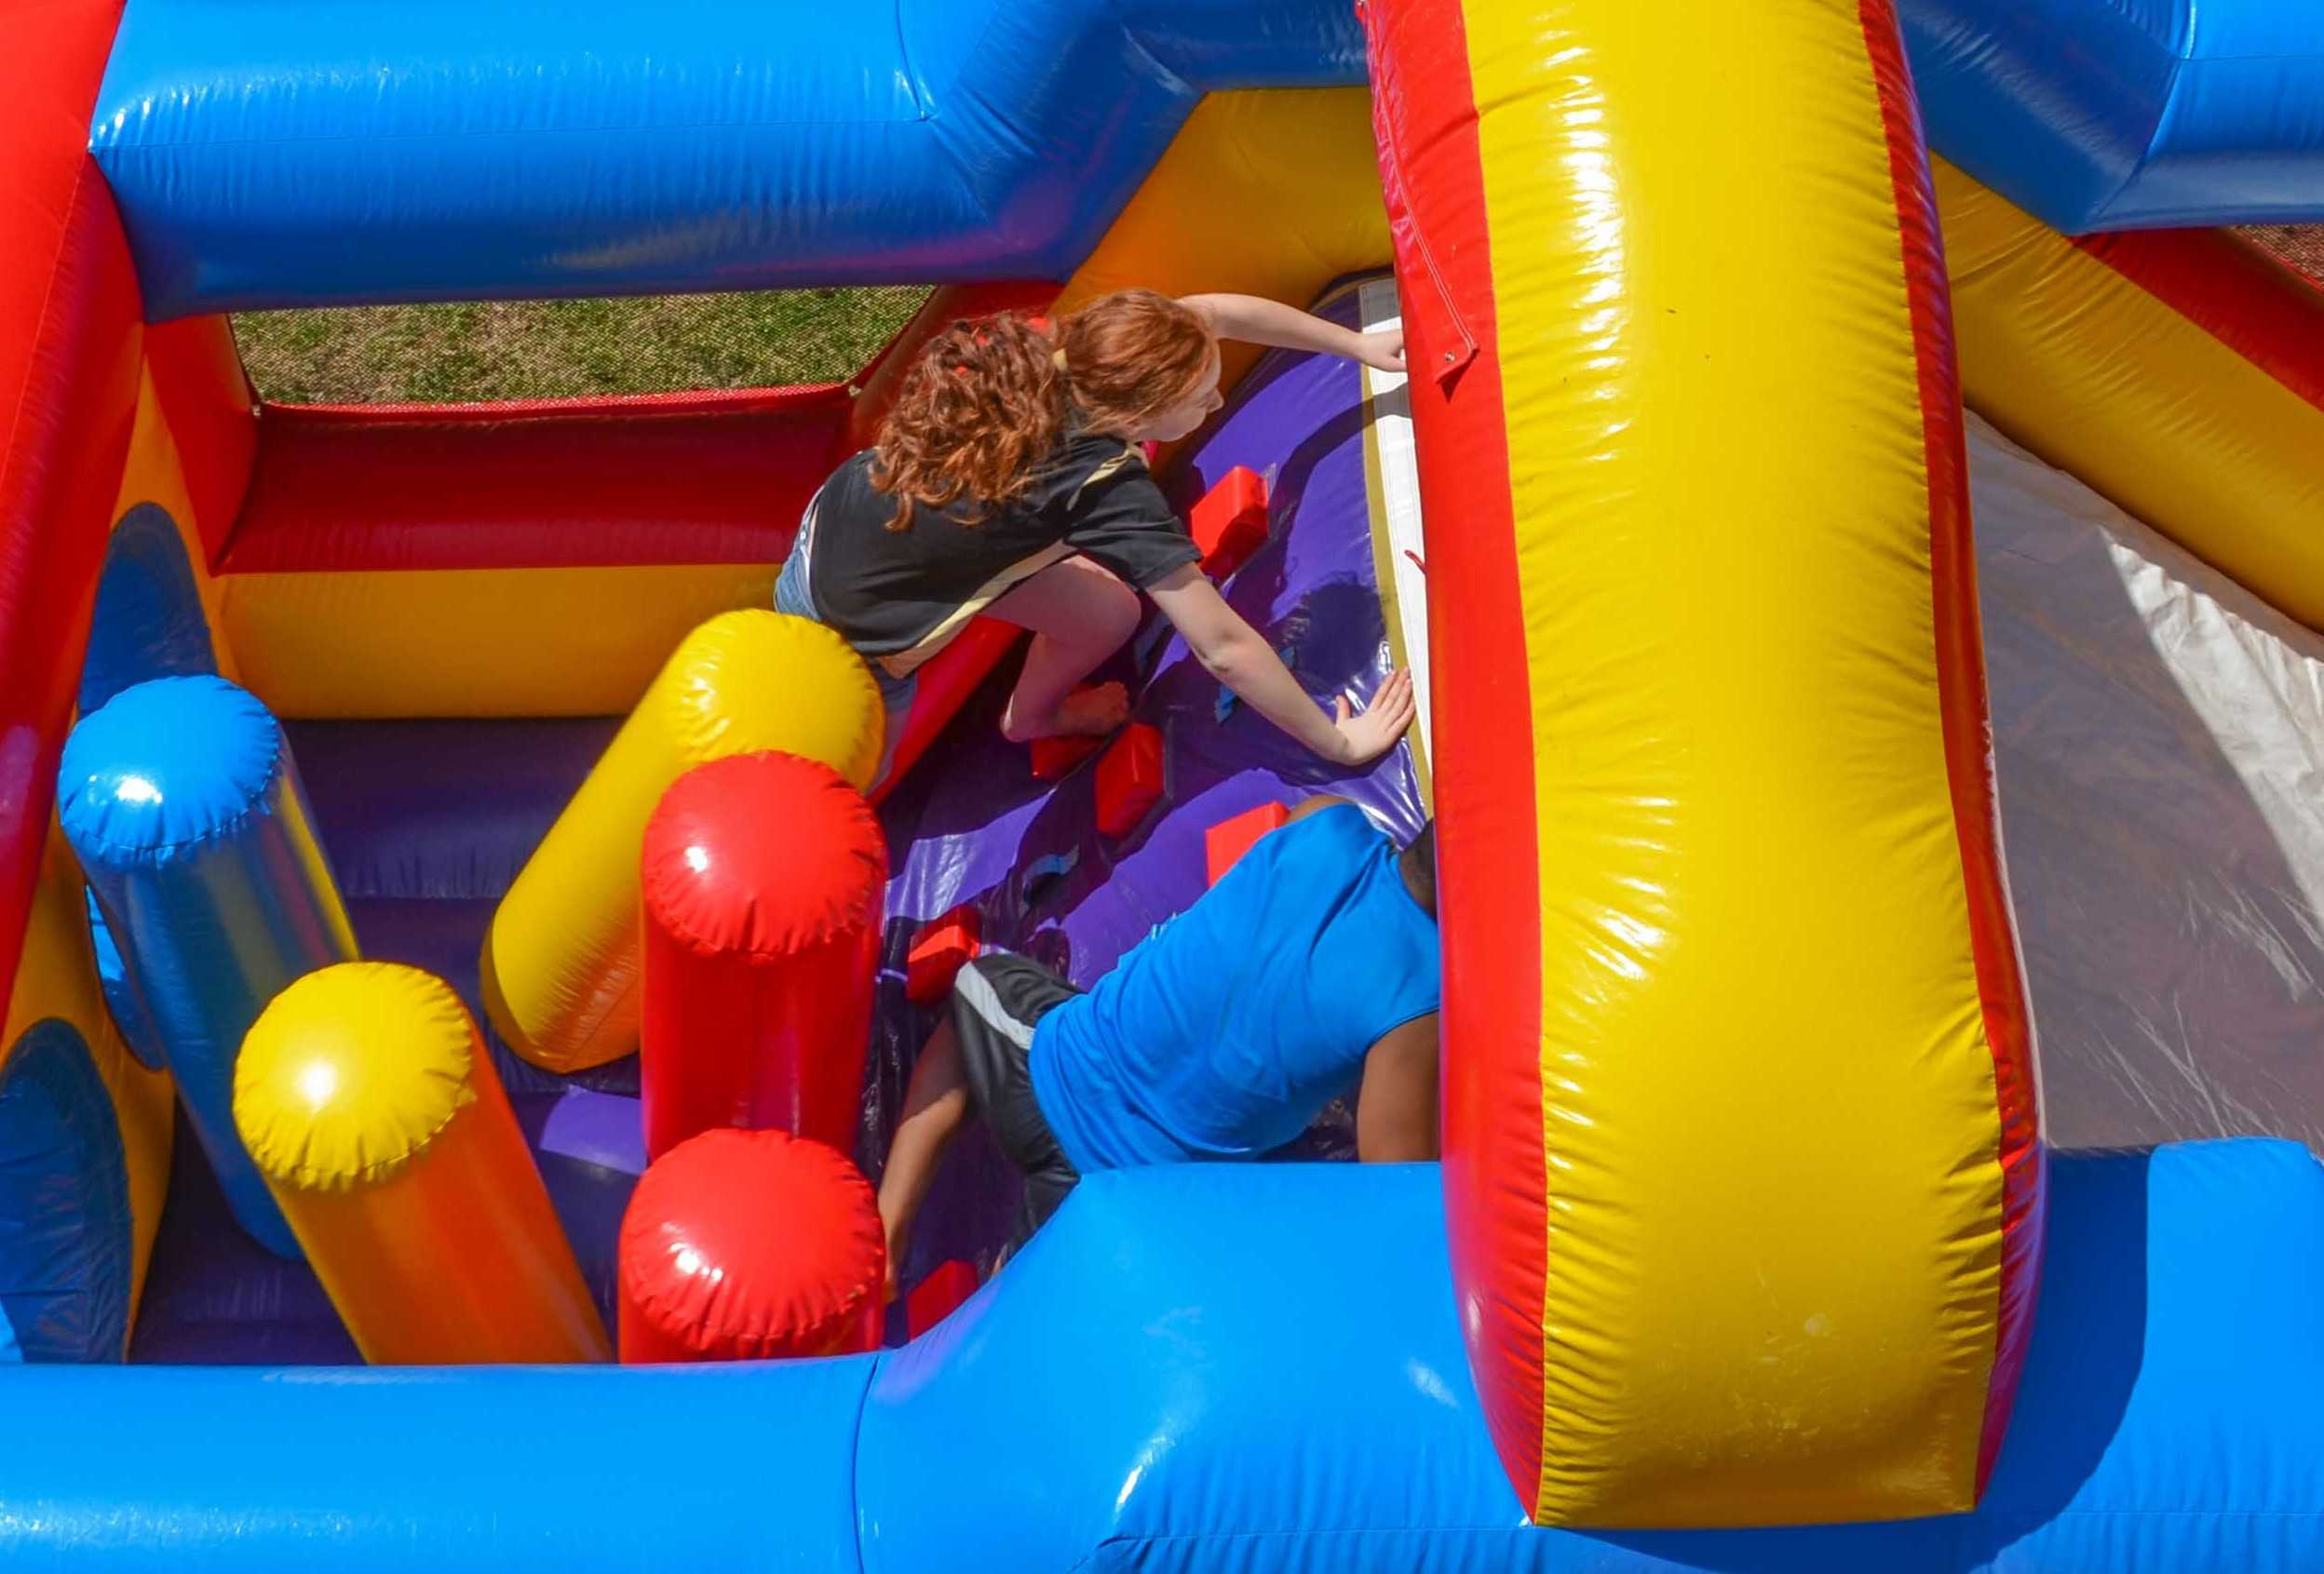 Obstacle courses and bounce house rentals Murfreesboro